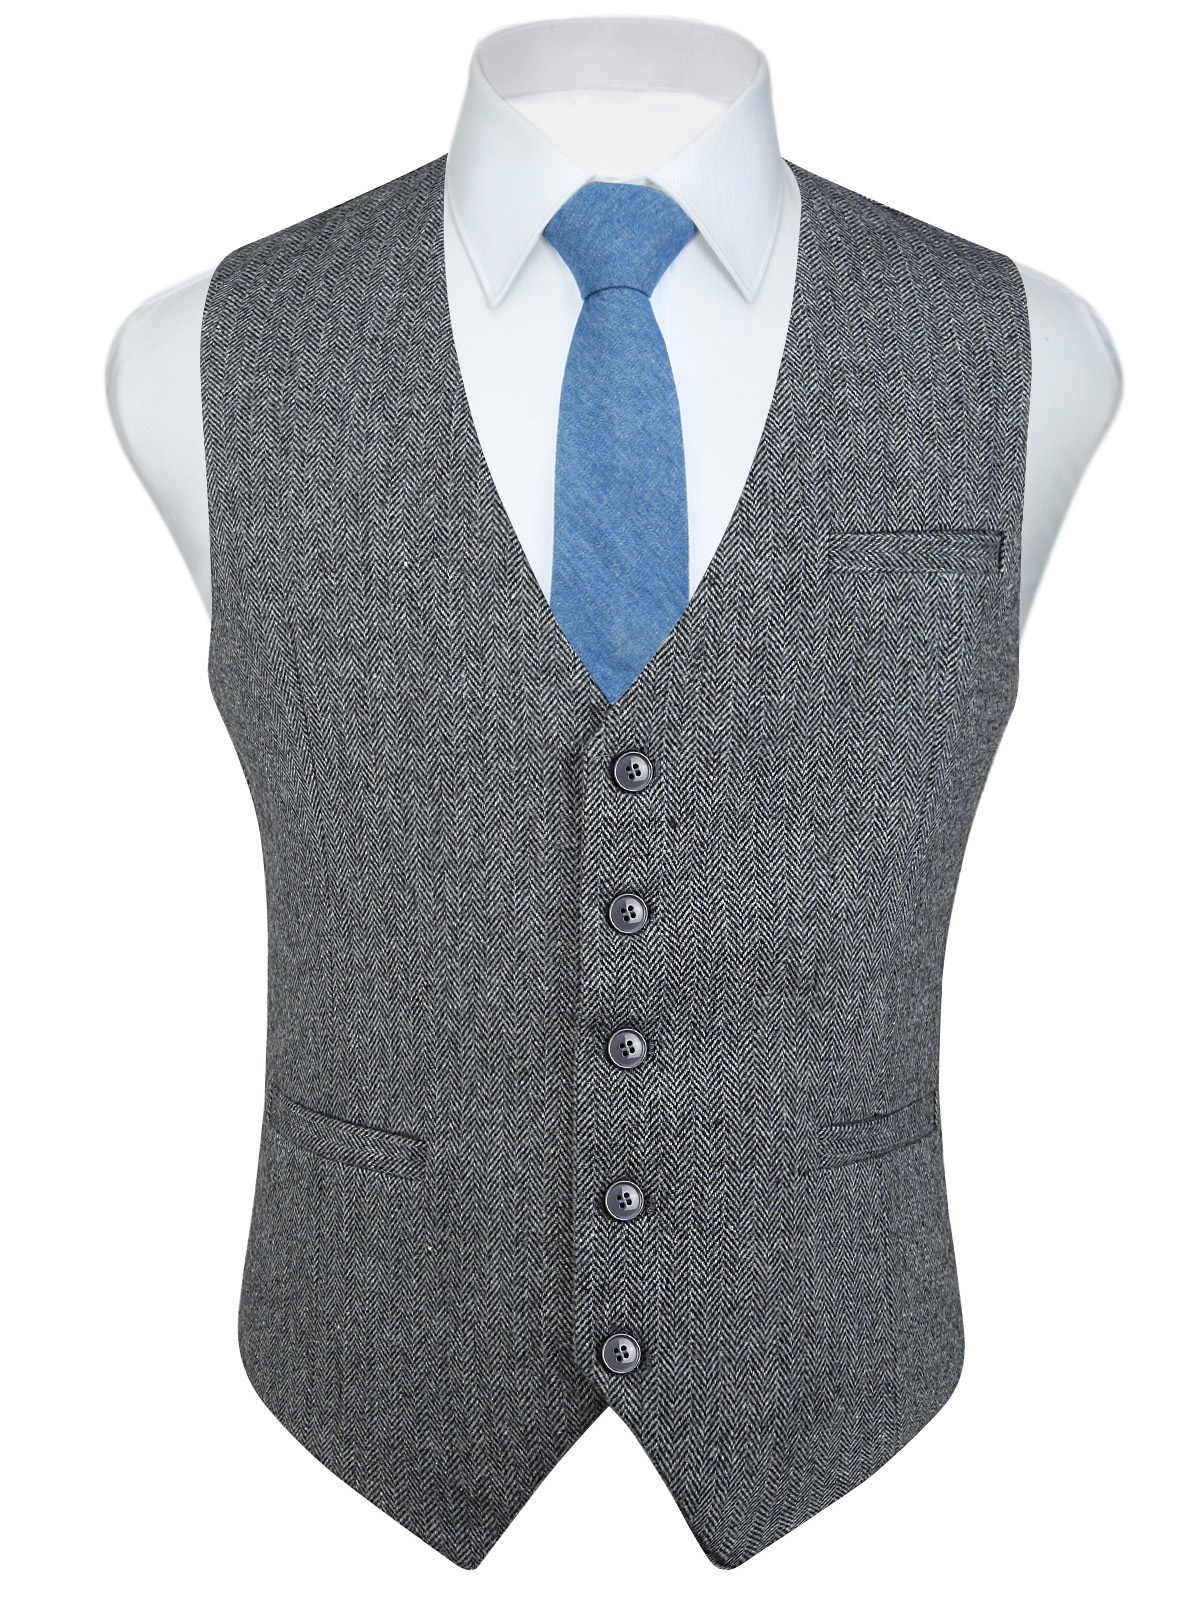 Mode Mannen Visgraat Tweed Pakken Vest Slim Fit Fullback Wol Mix Jurk Vest Voor Suit Of Tuxedo